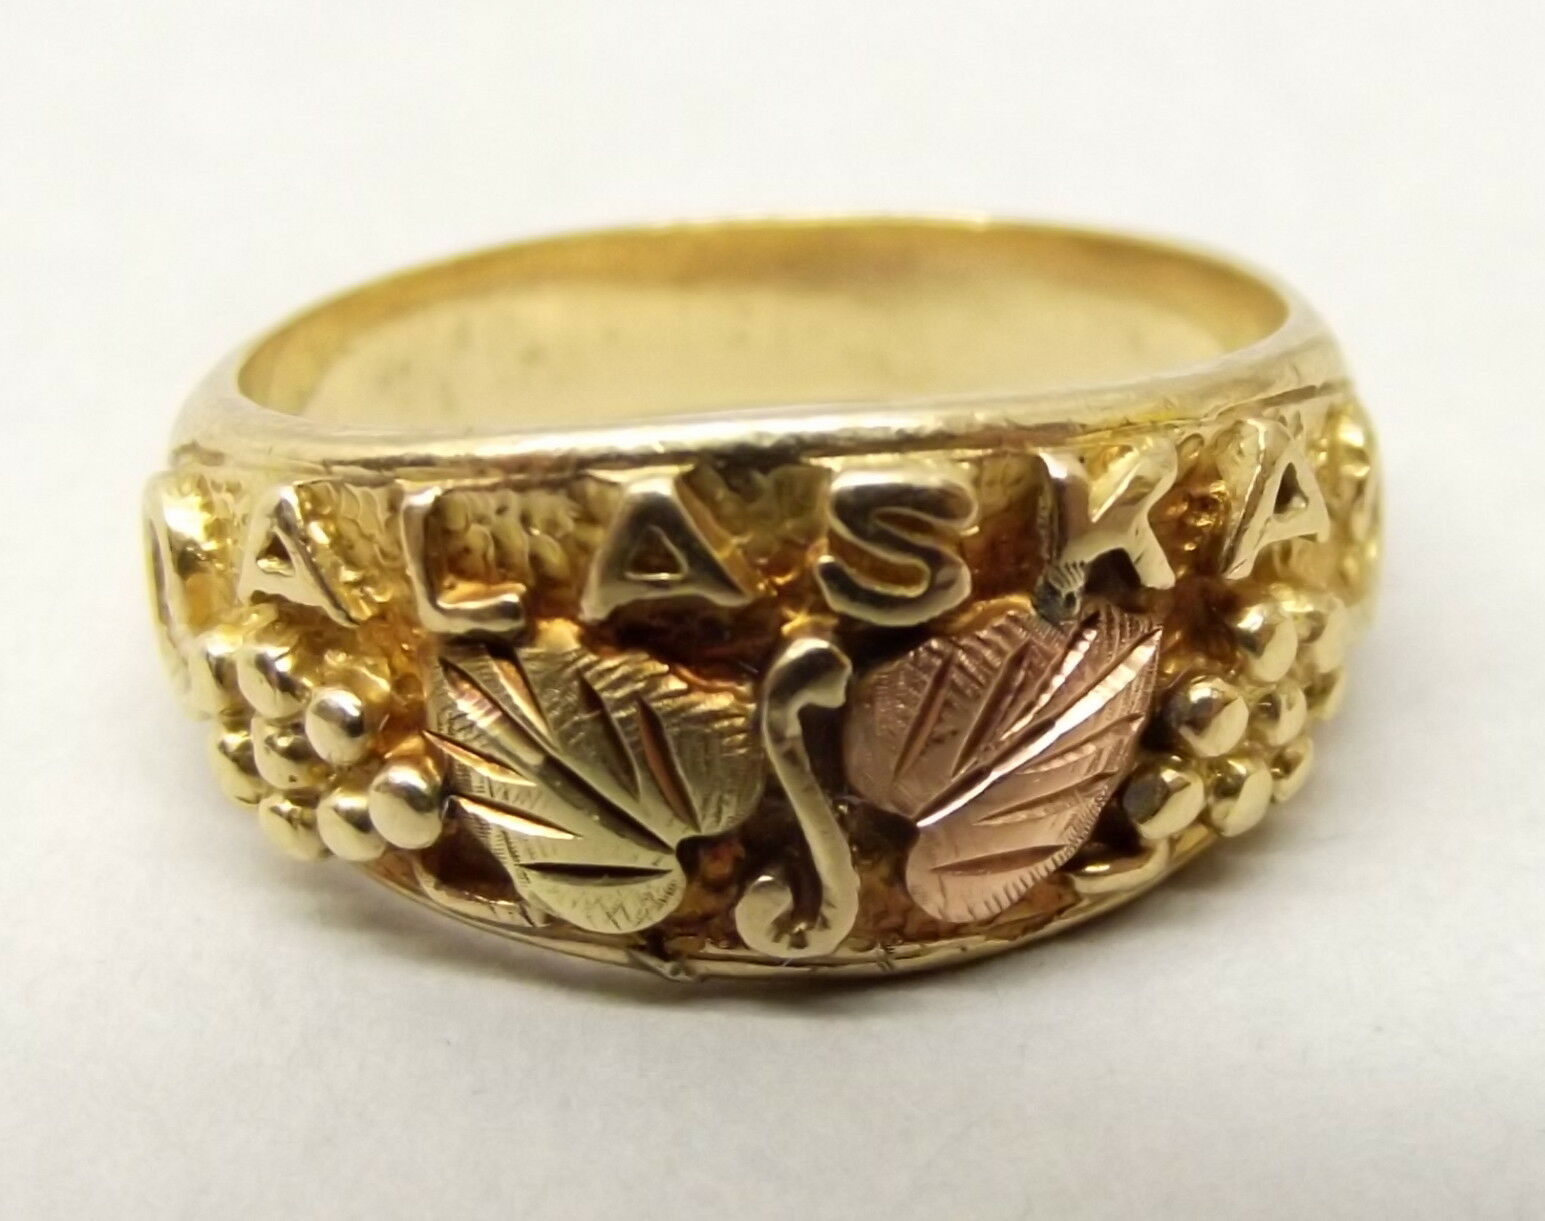 Vtg 10K gold Alaskan Ring Sz 6.5 Grape Leaf Vine Ornate 12k Yellow pink gold